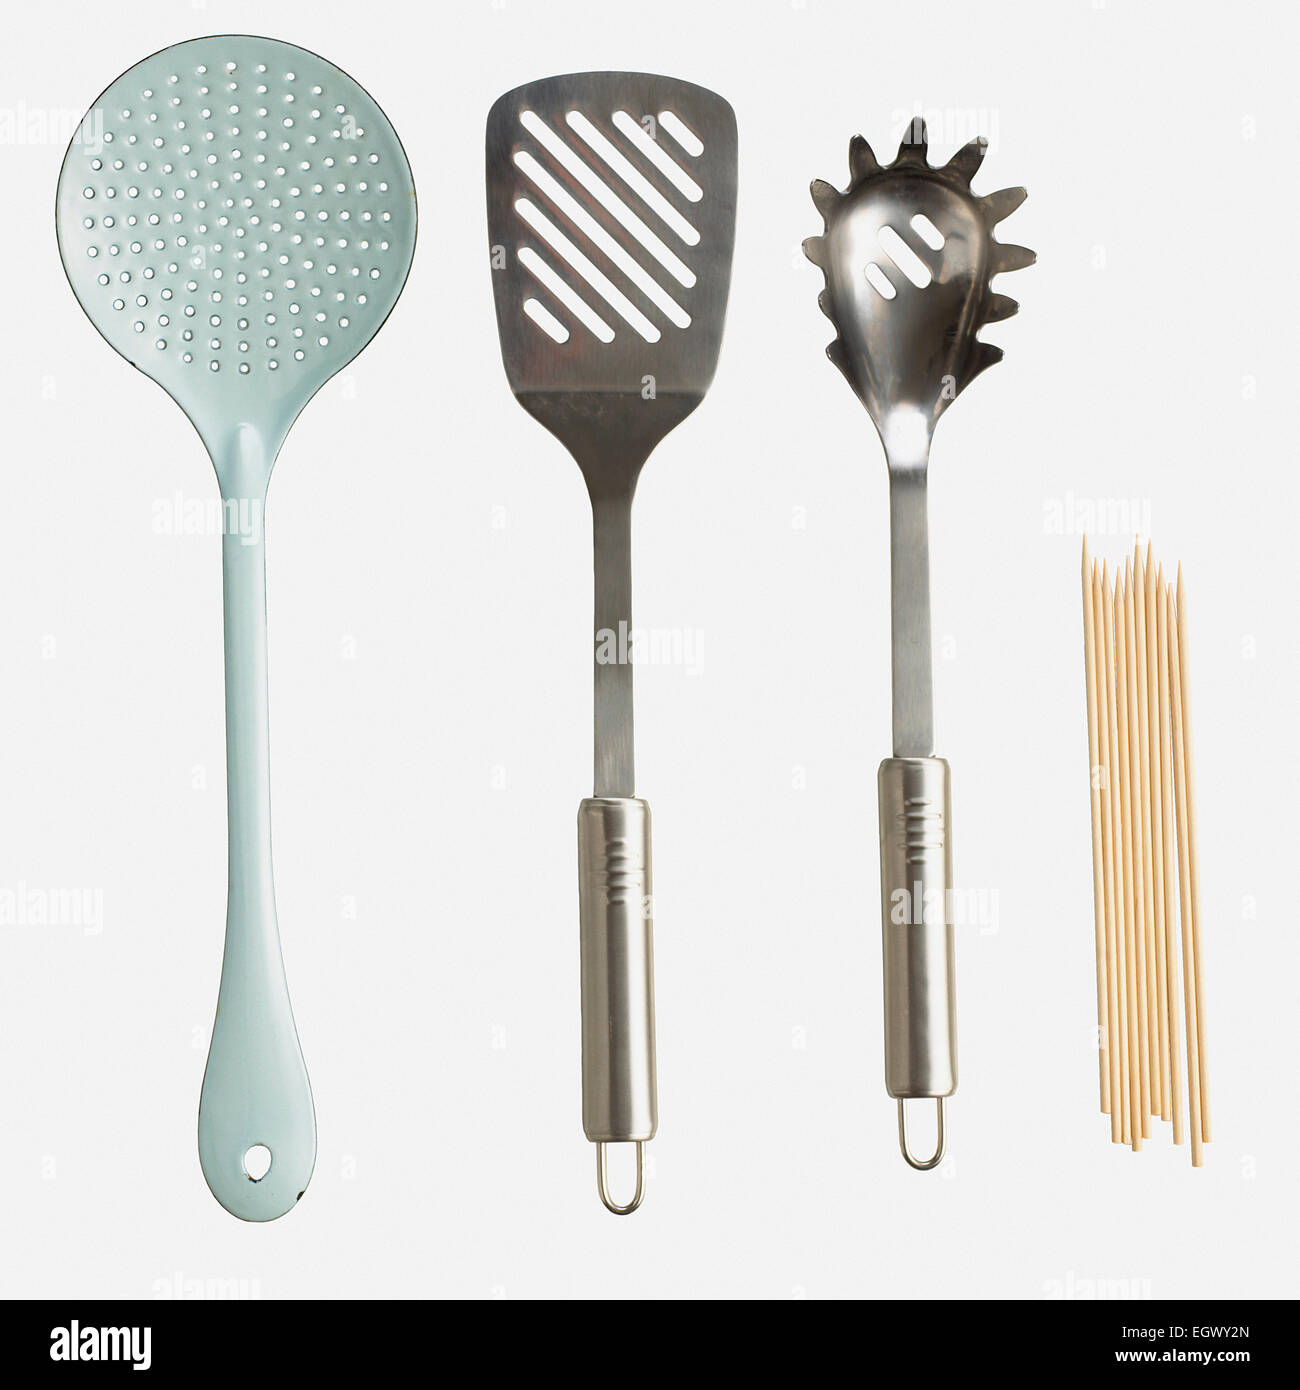 Slotted spoon, spatula, spaghetti claw and skewers - Stock Image